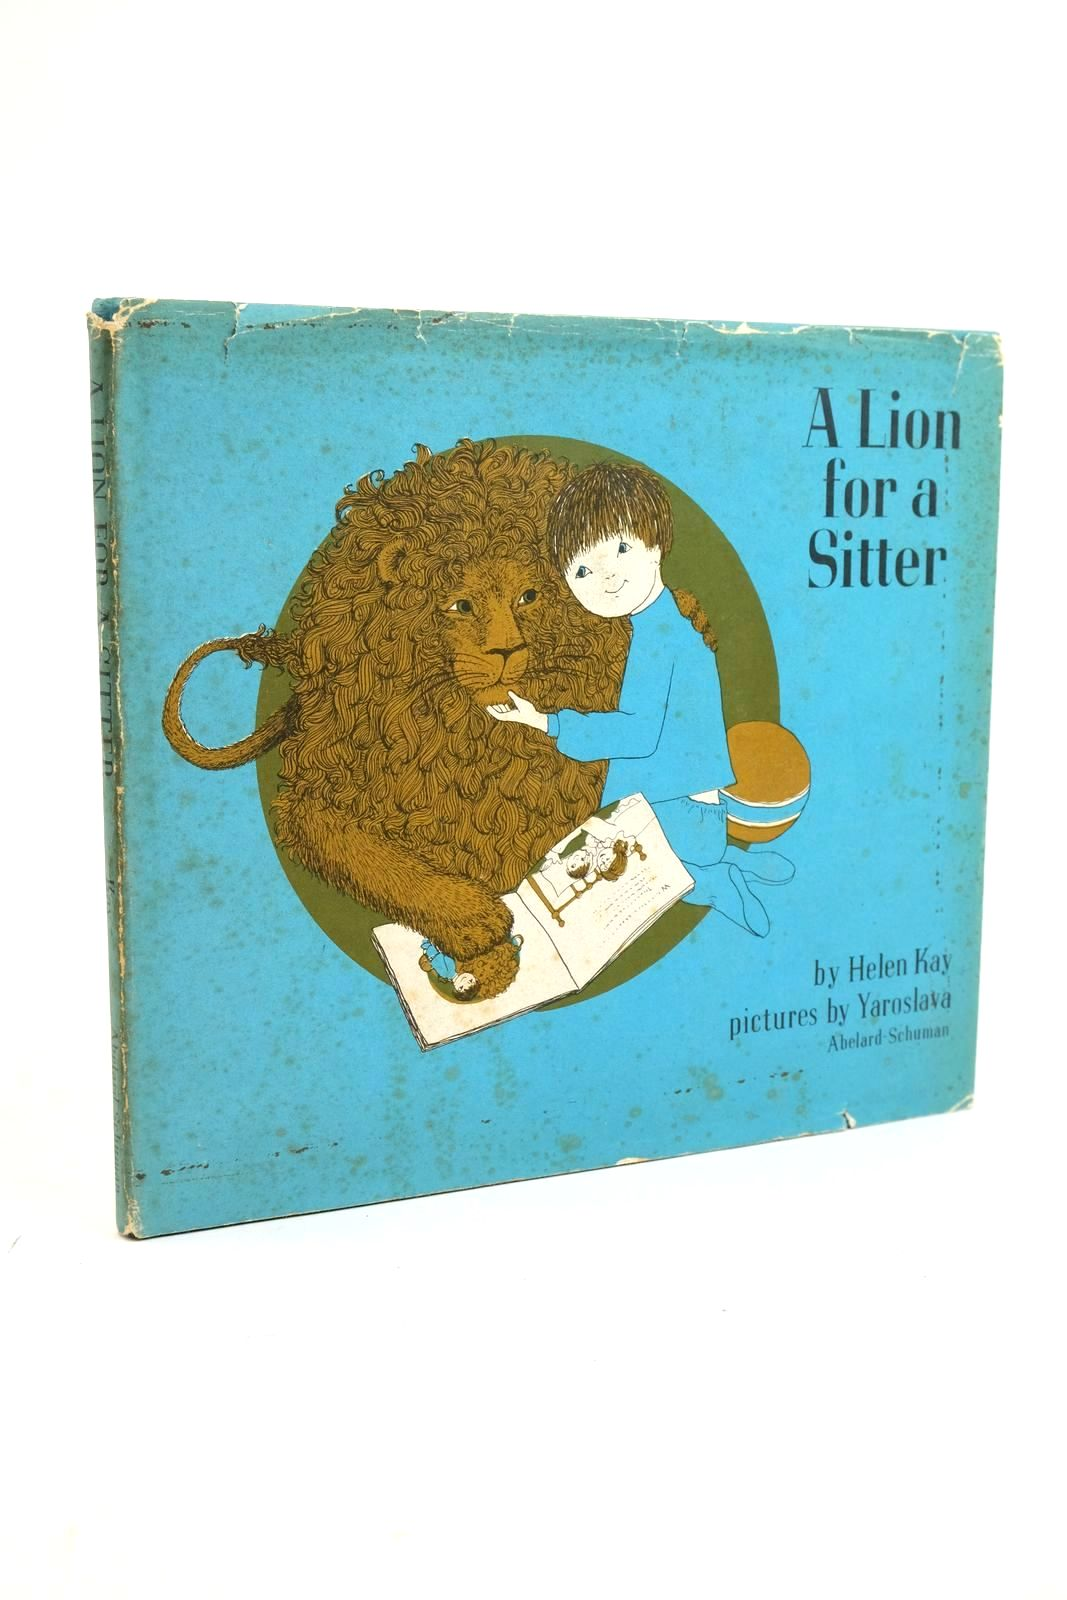 Photo of A LION FOR A SITTER written by Kay, Helen illustrated by Yaroslava, published by Abelard-Schuman (STOCK CODE: 1321534)  for sale by Stella & Rose's Books